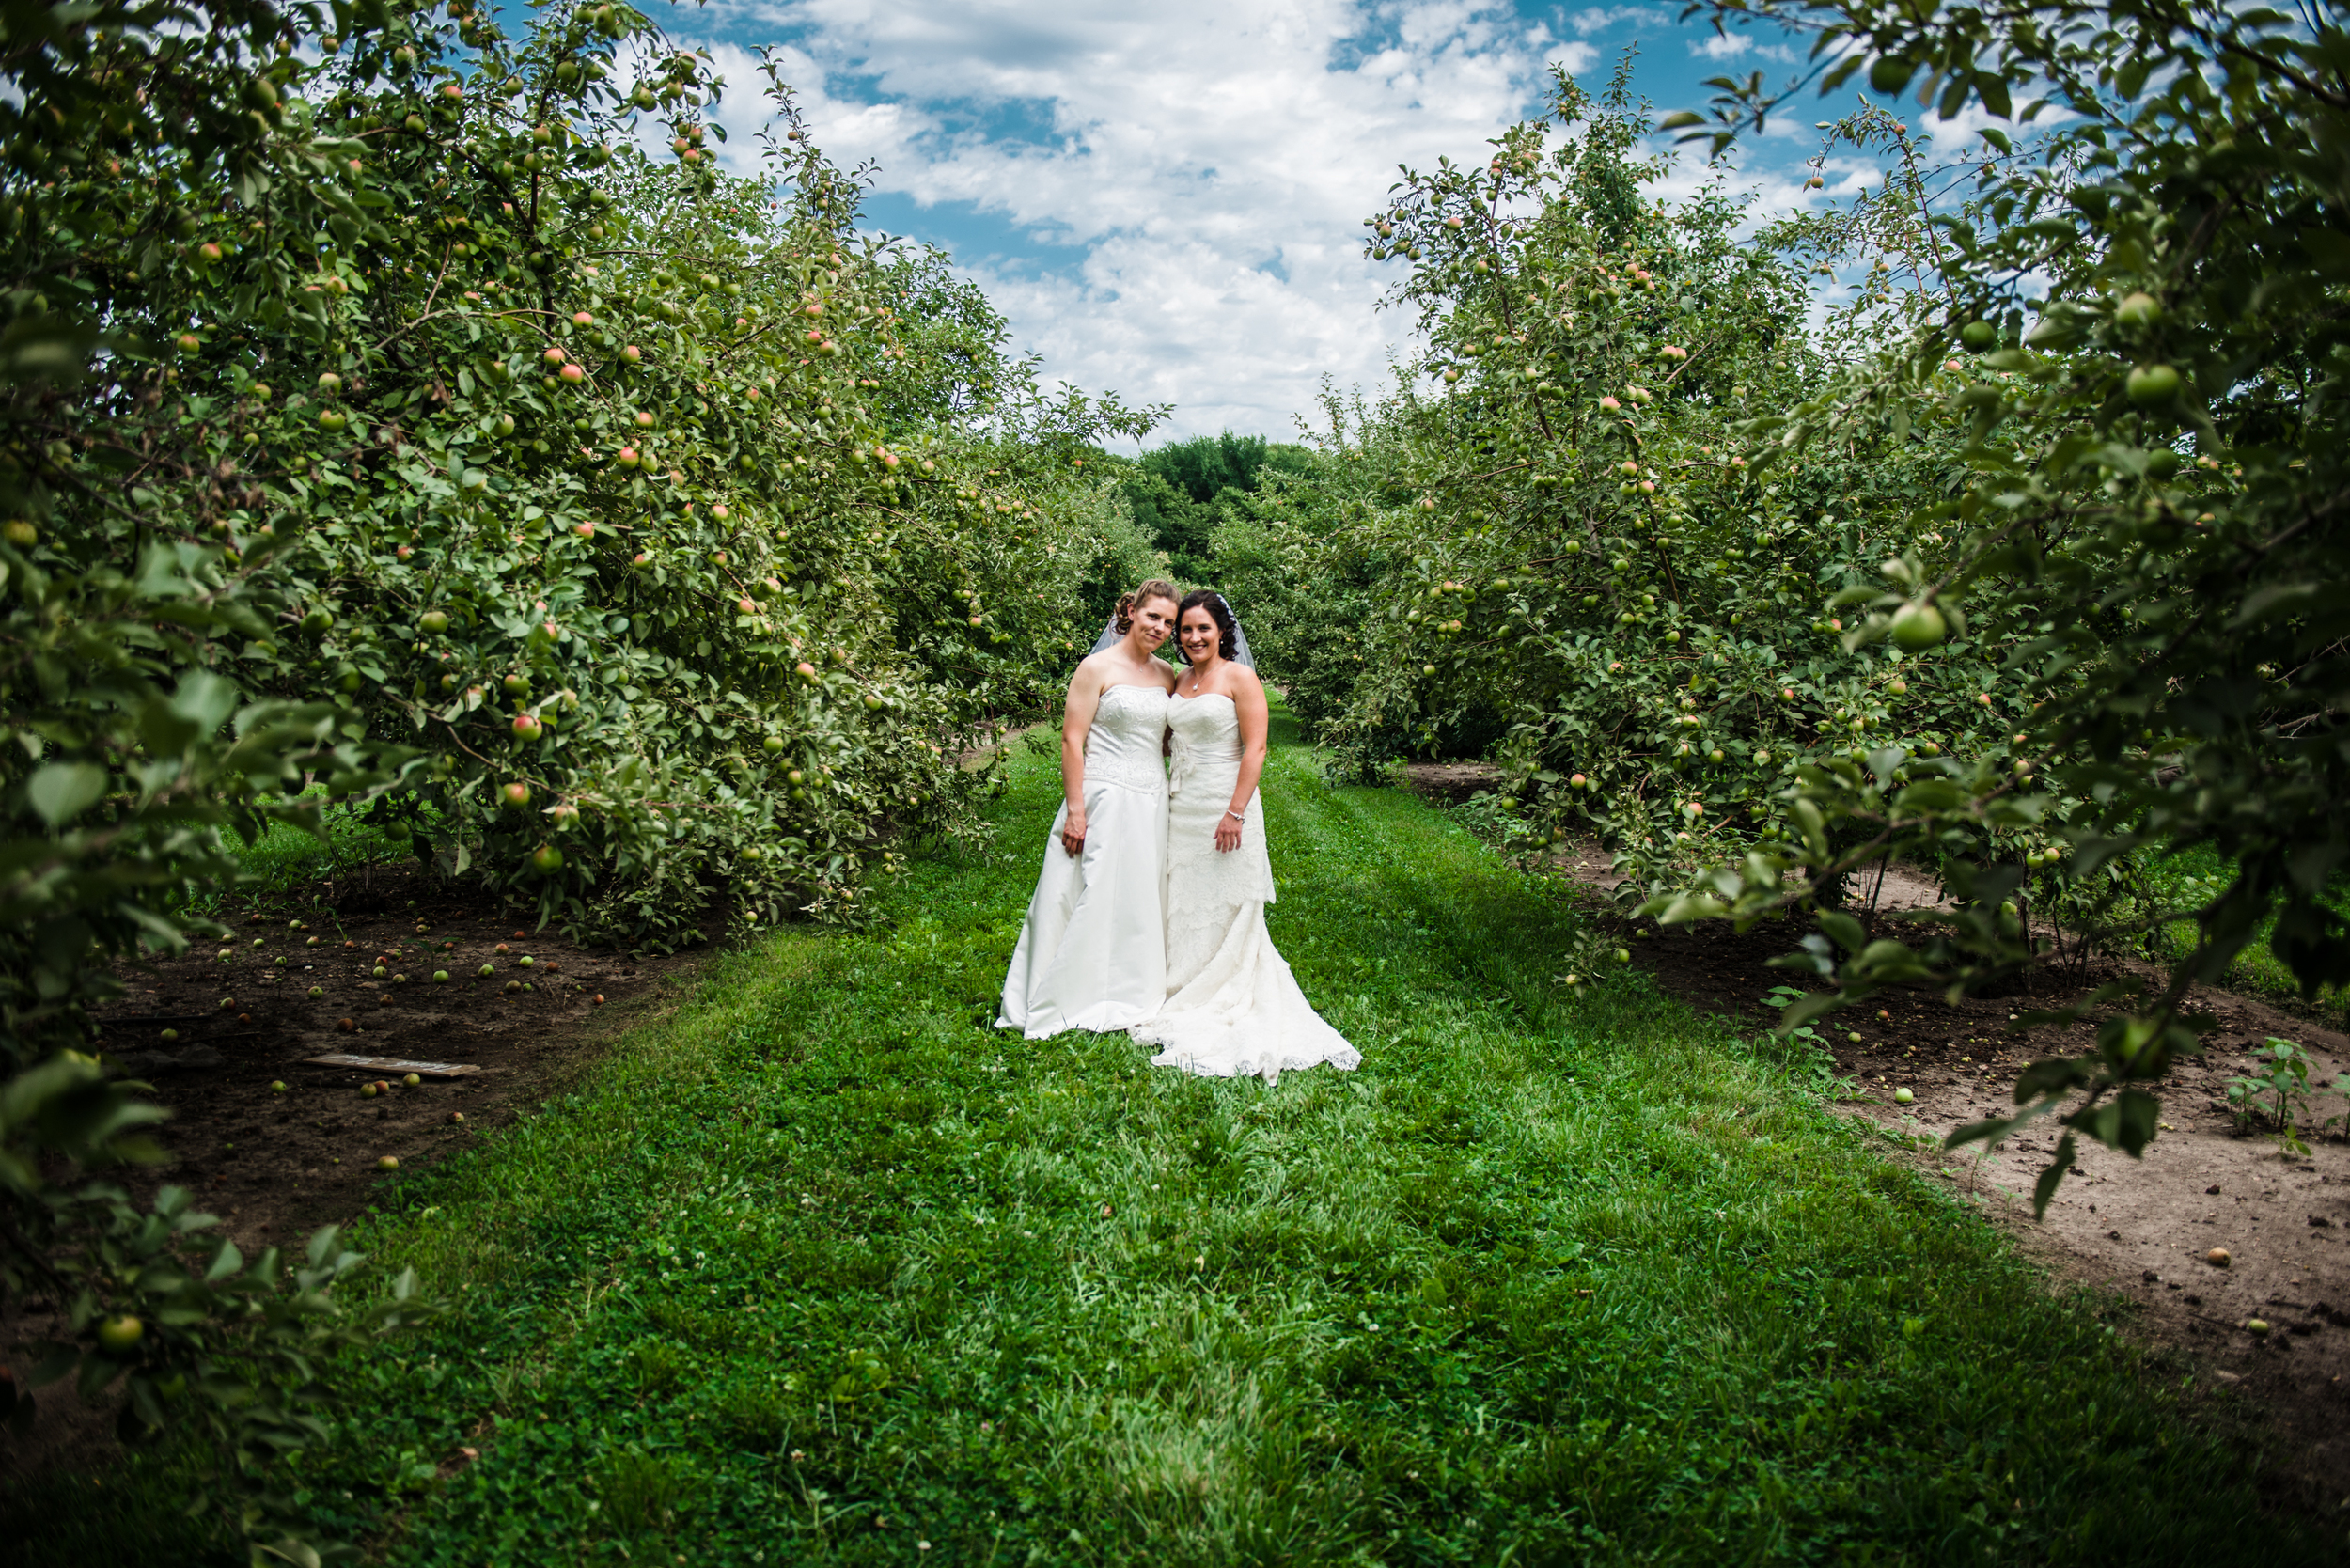 Minnesota LGBT Wedding Photography - Megan and Trista - RKH Images - First Look (55 of 60).jpg